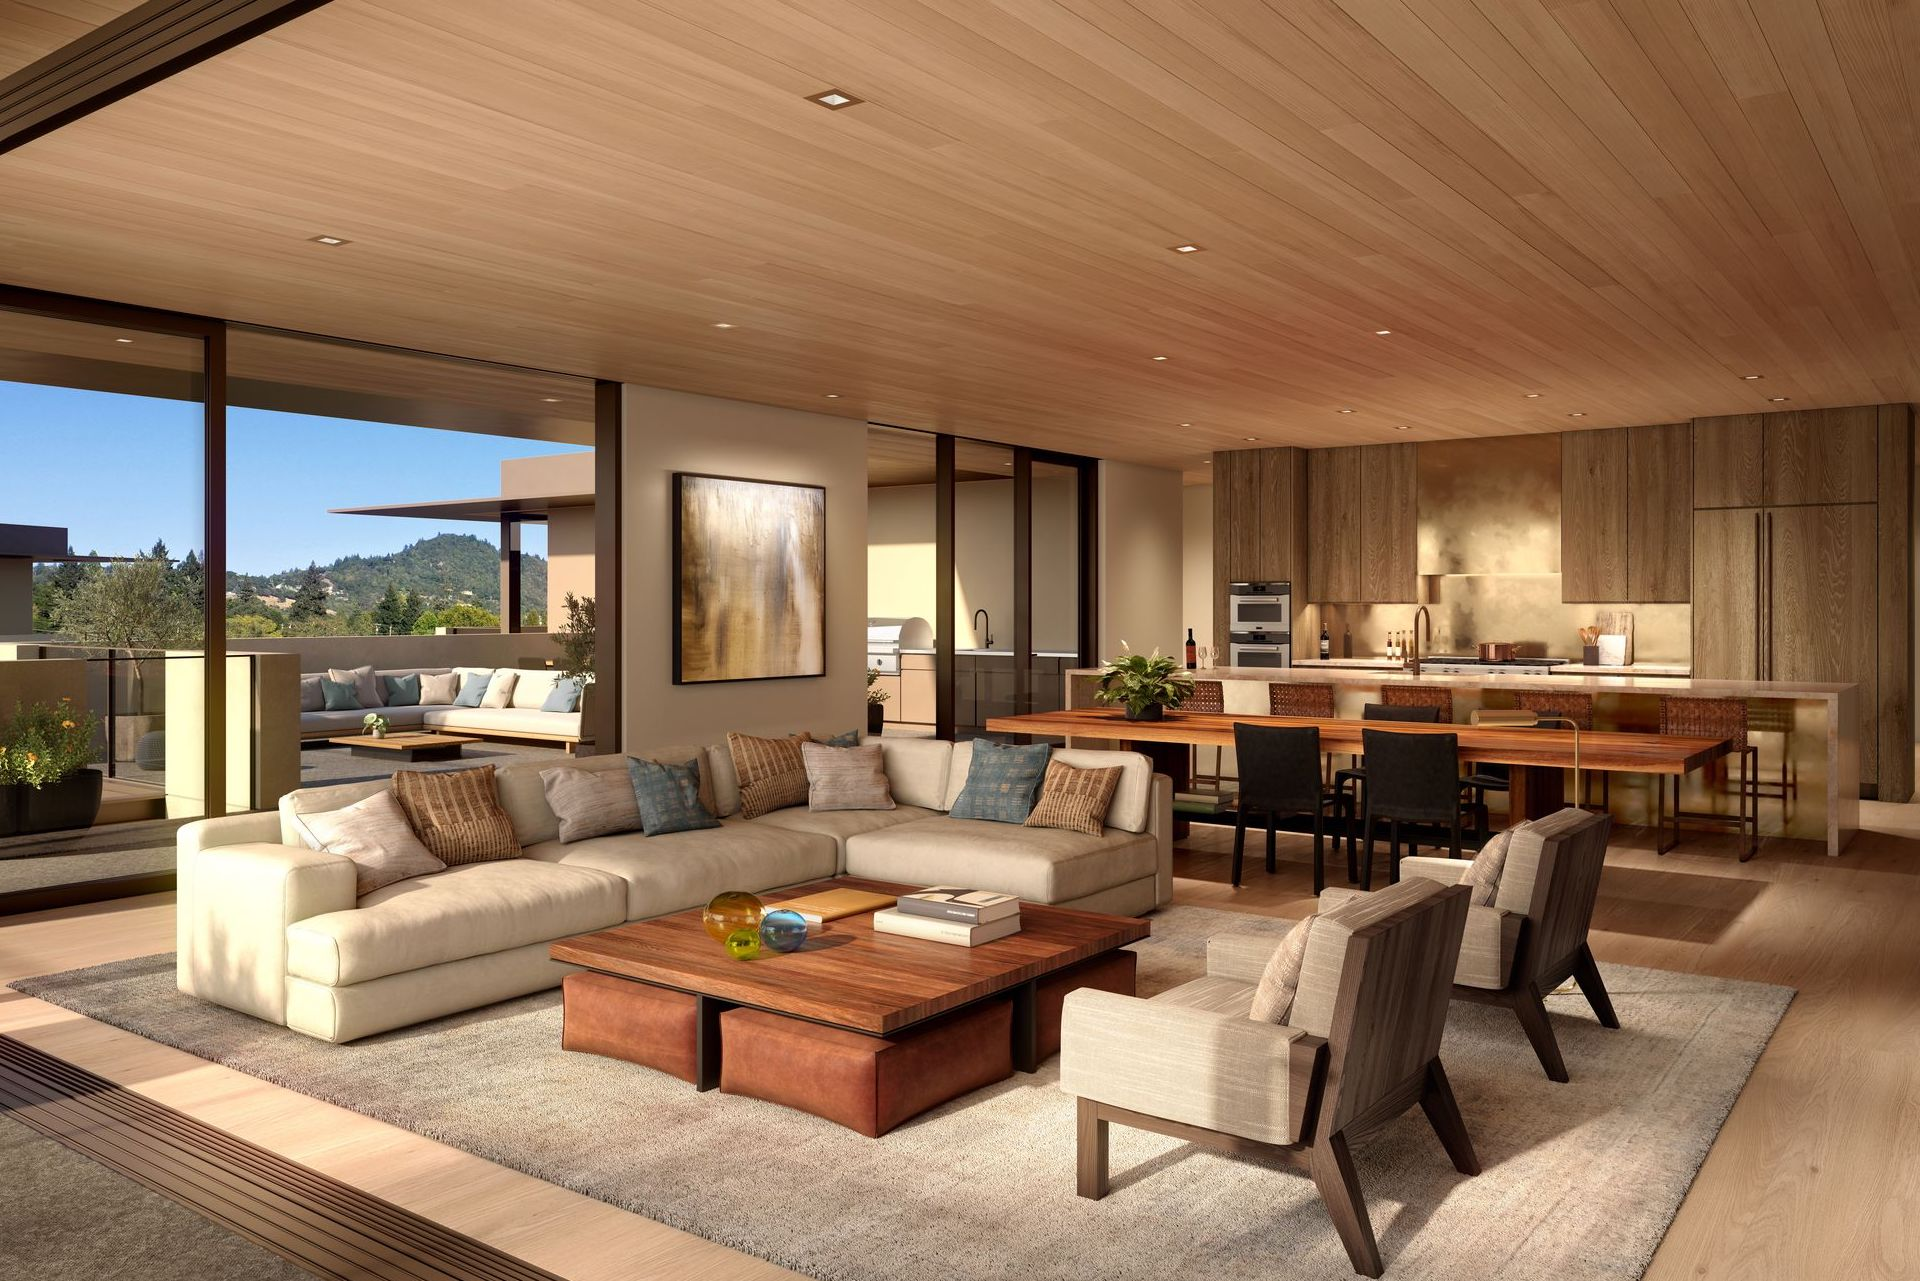 Expansive spaces are created as the indoors flow seamlessly to the outside –with views of Fitch Mountain.